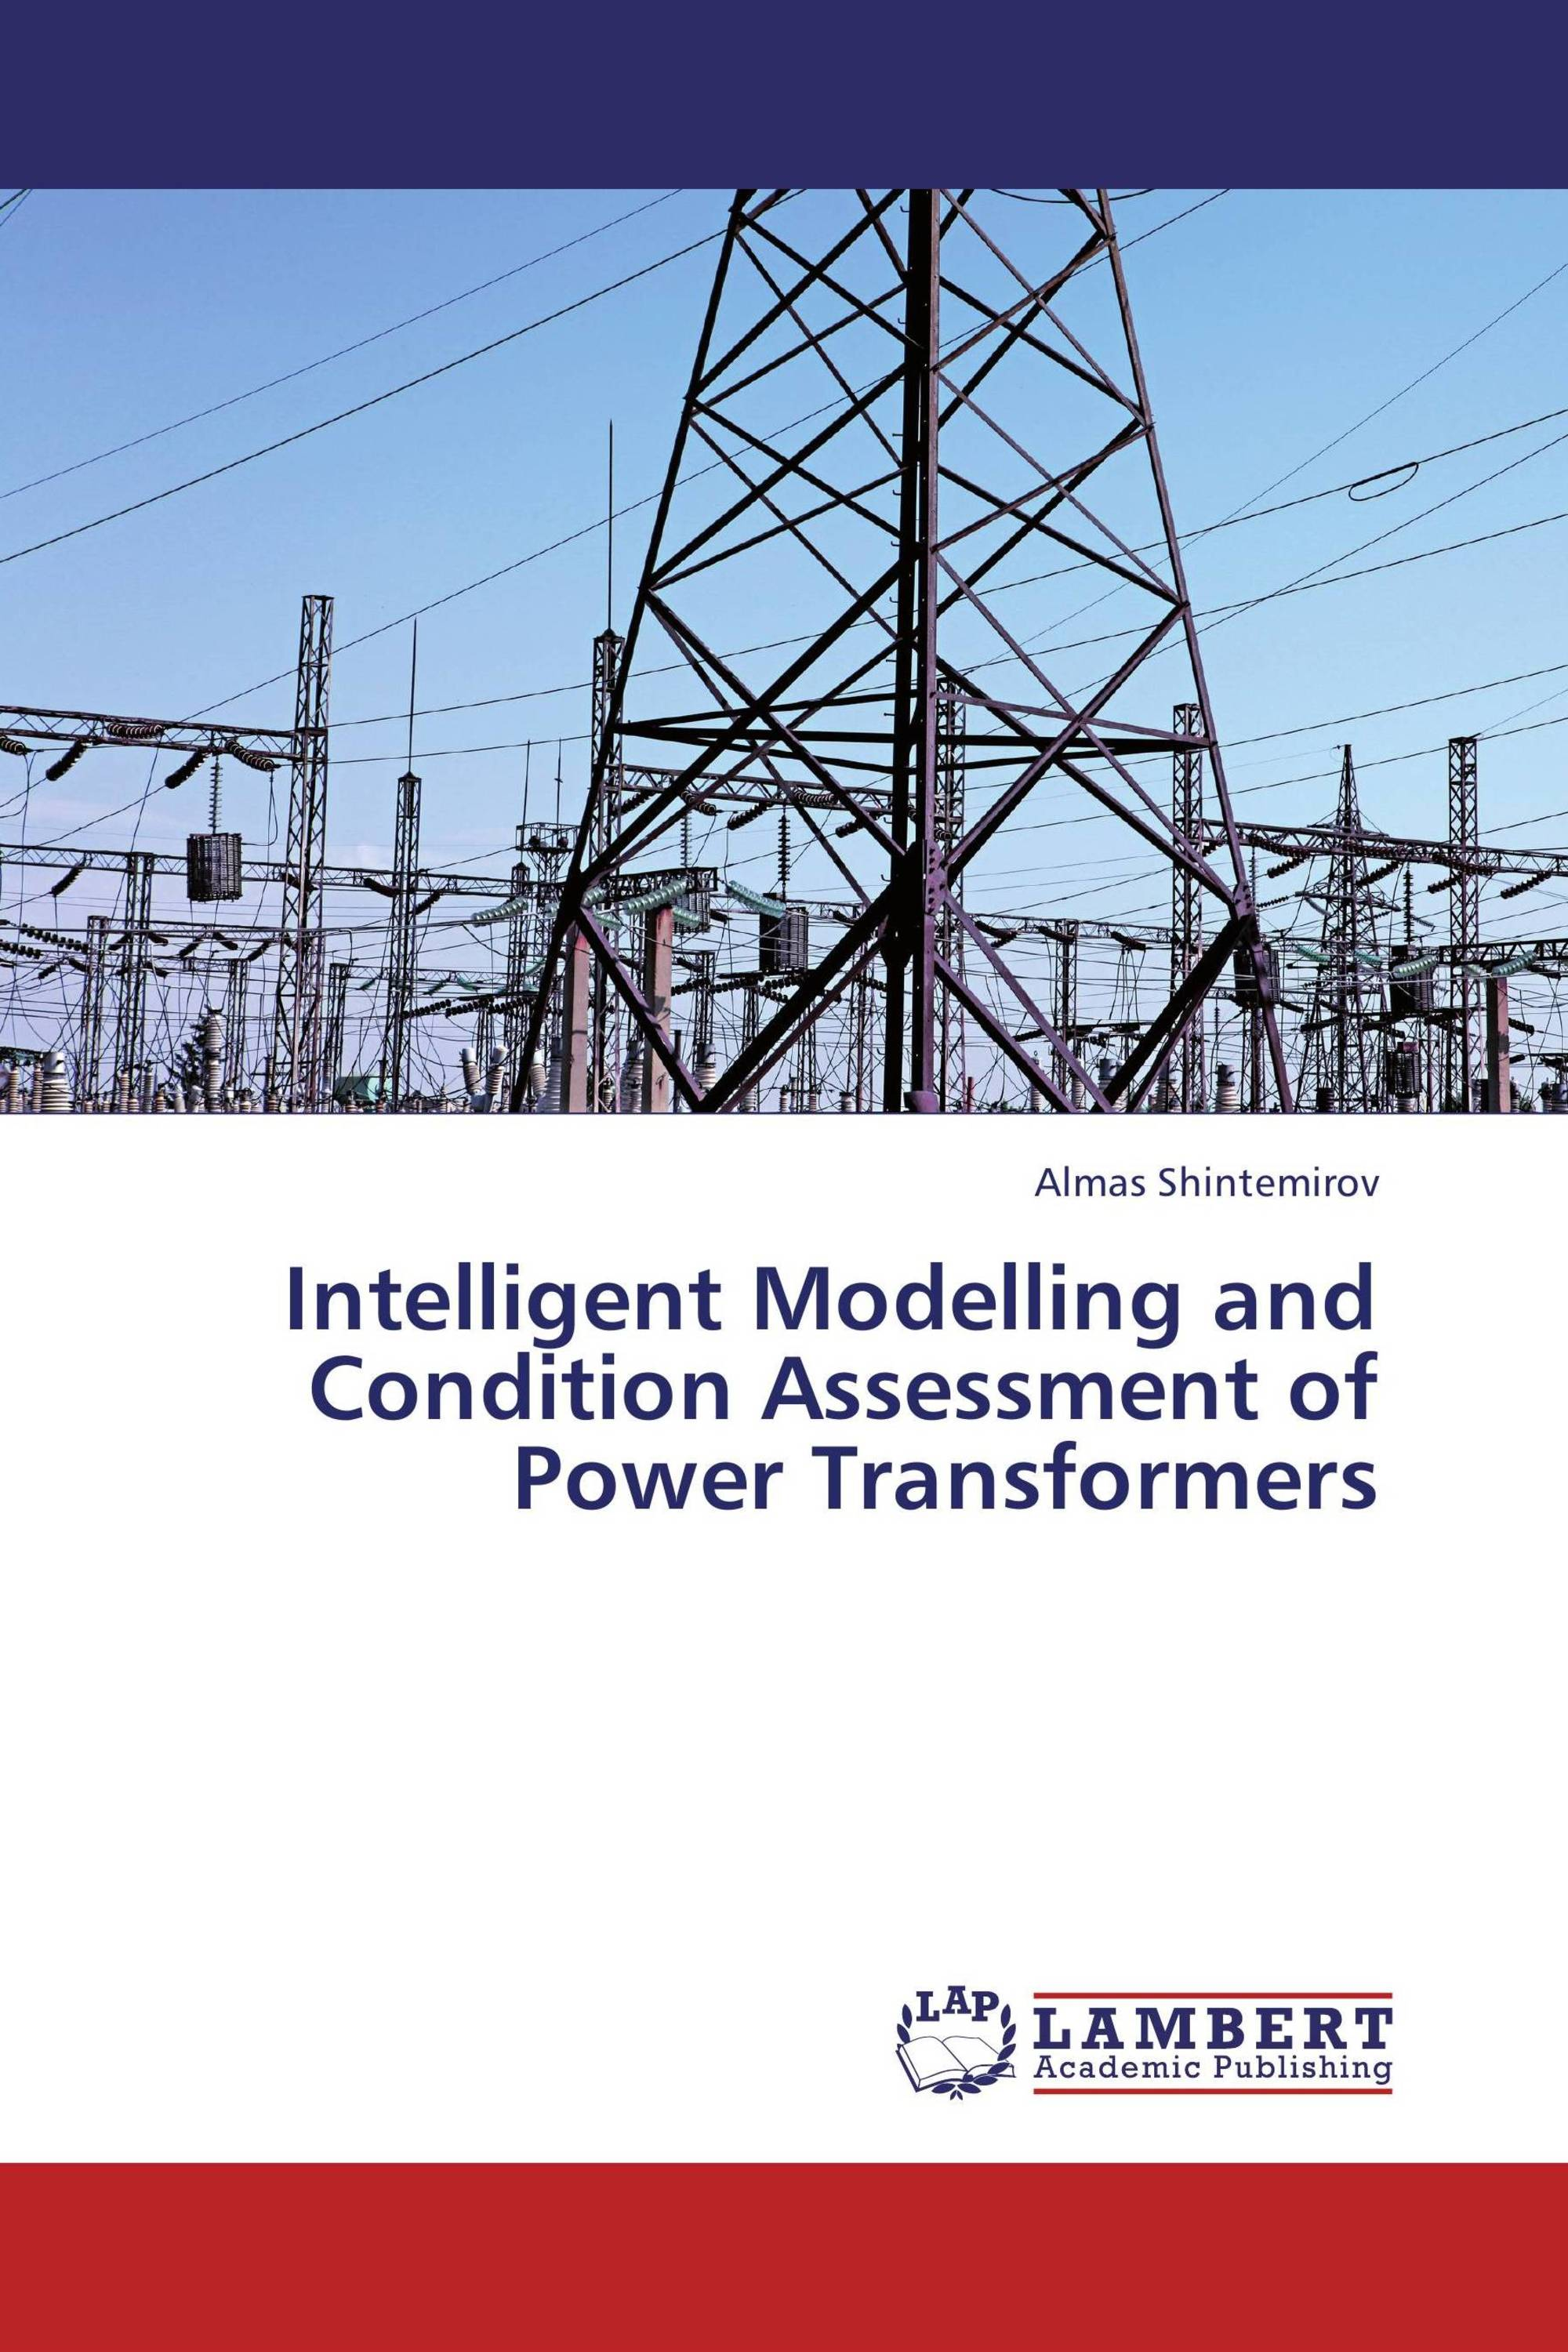 Intelligent Modelling and Condition Assessment of Power Transformers